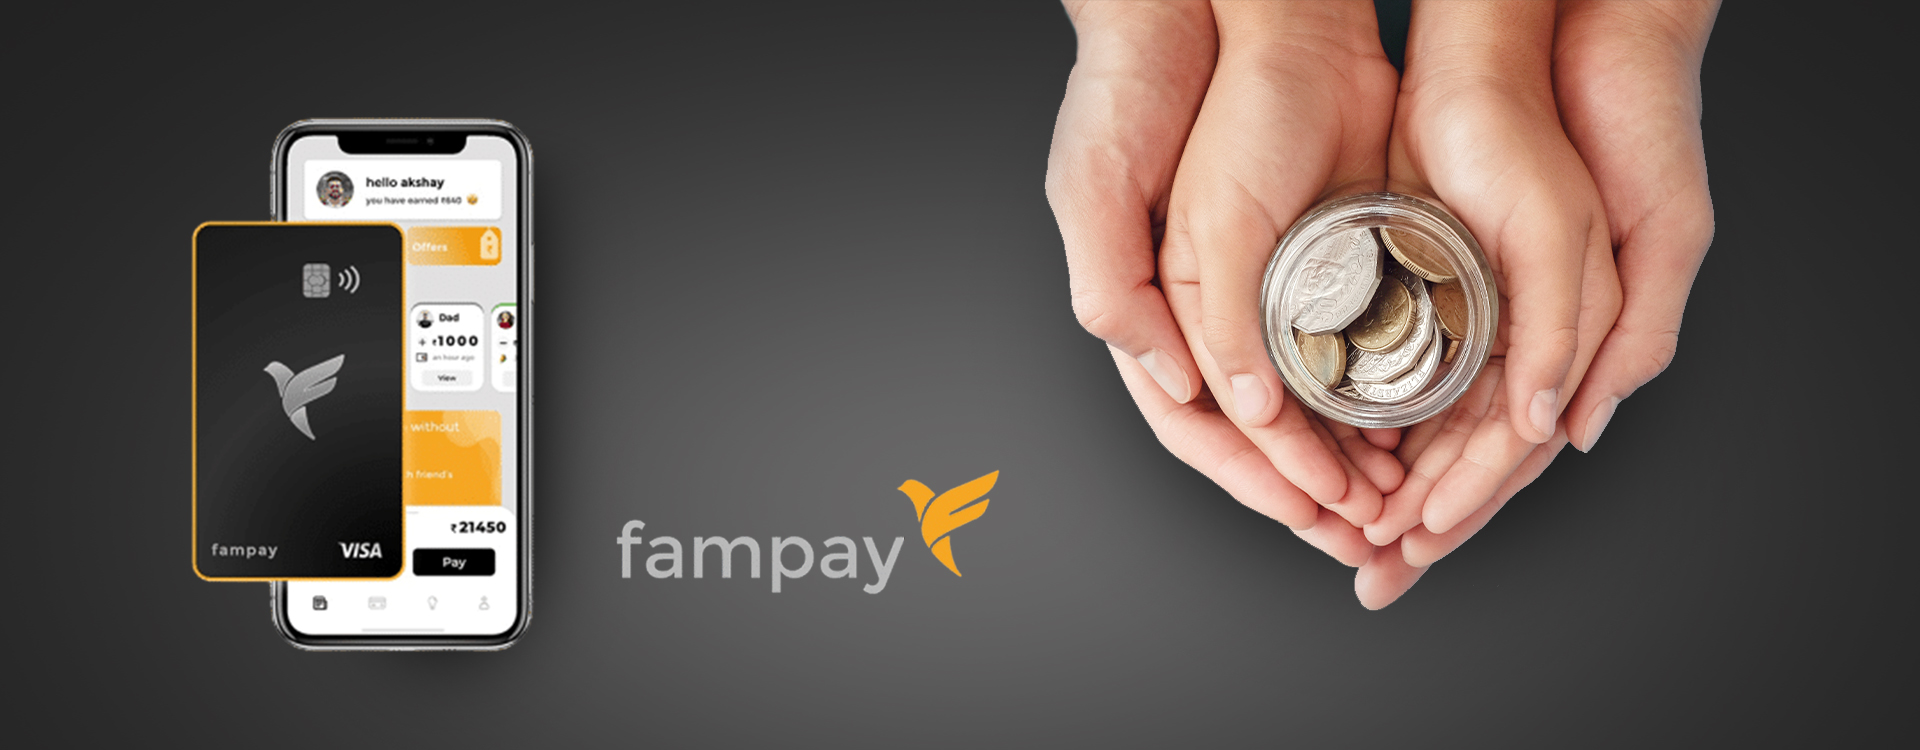 FamPay is a fintech statup that helps kids learn money management.